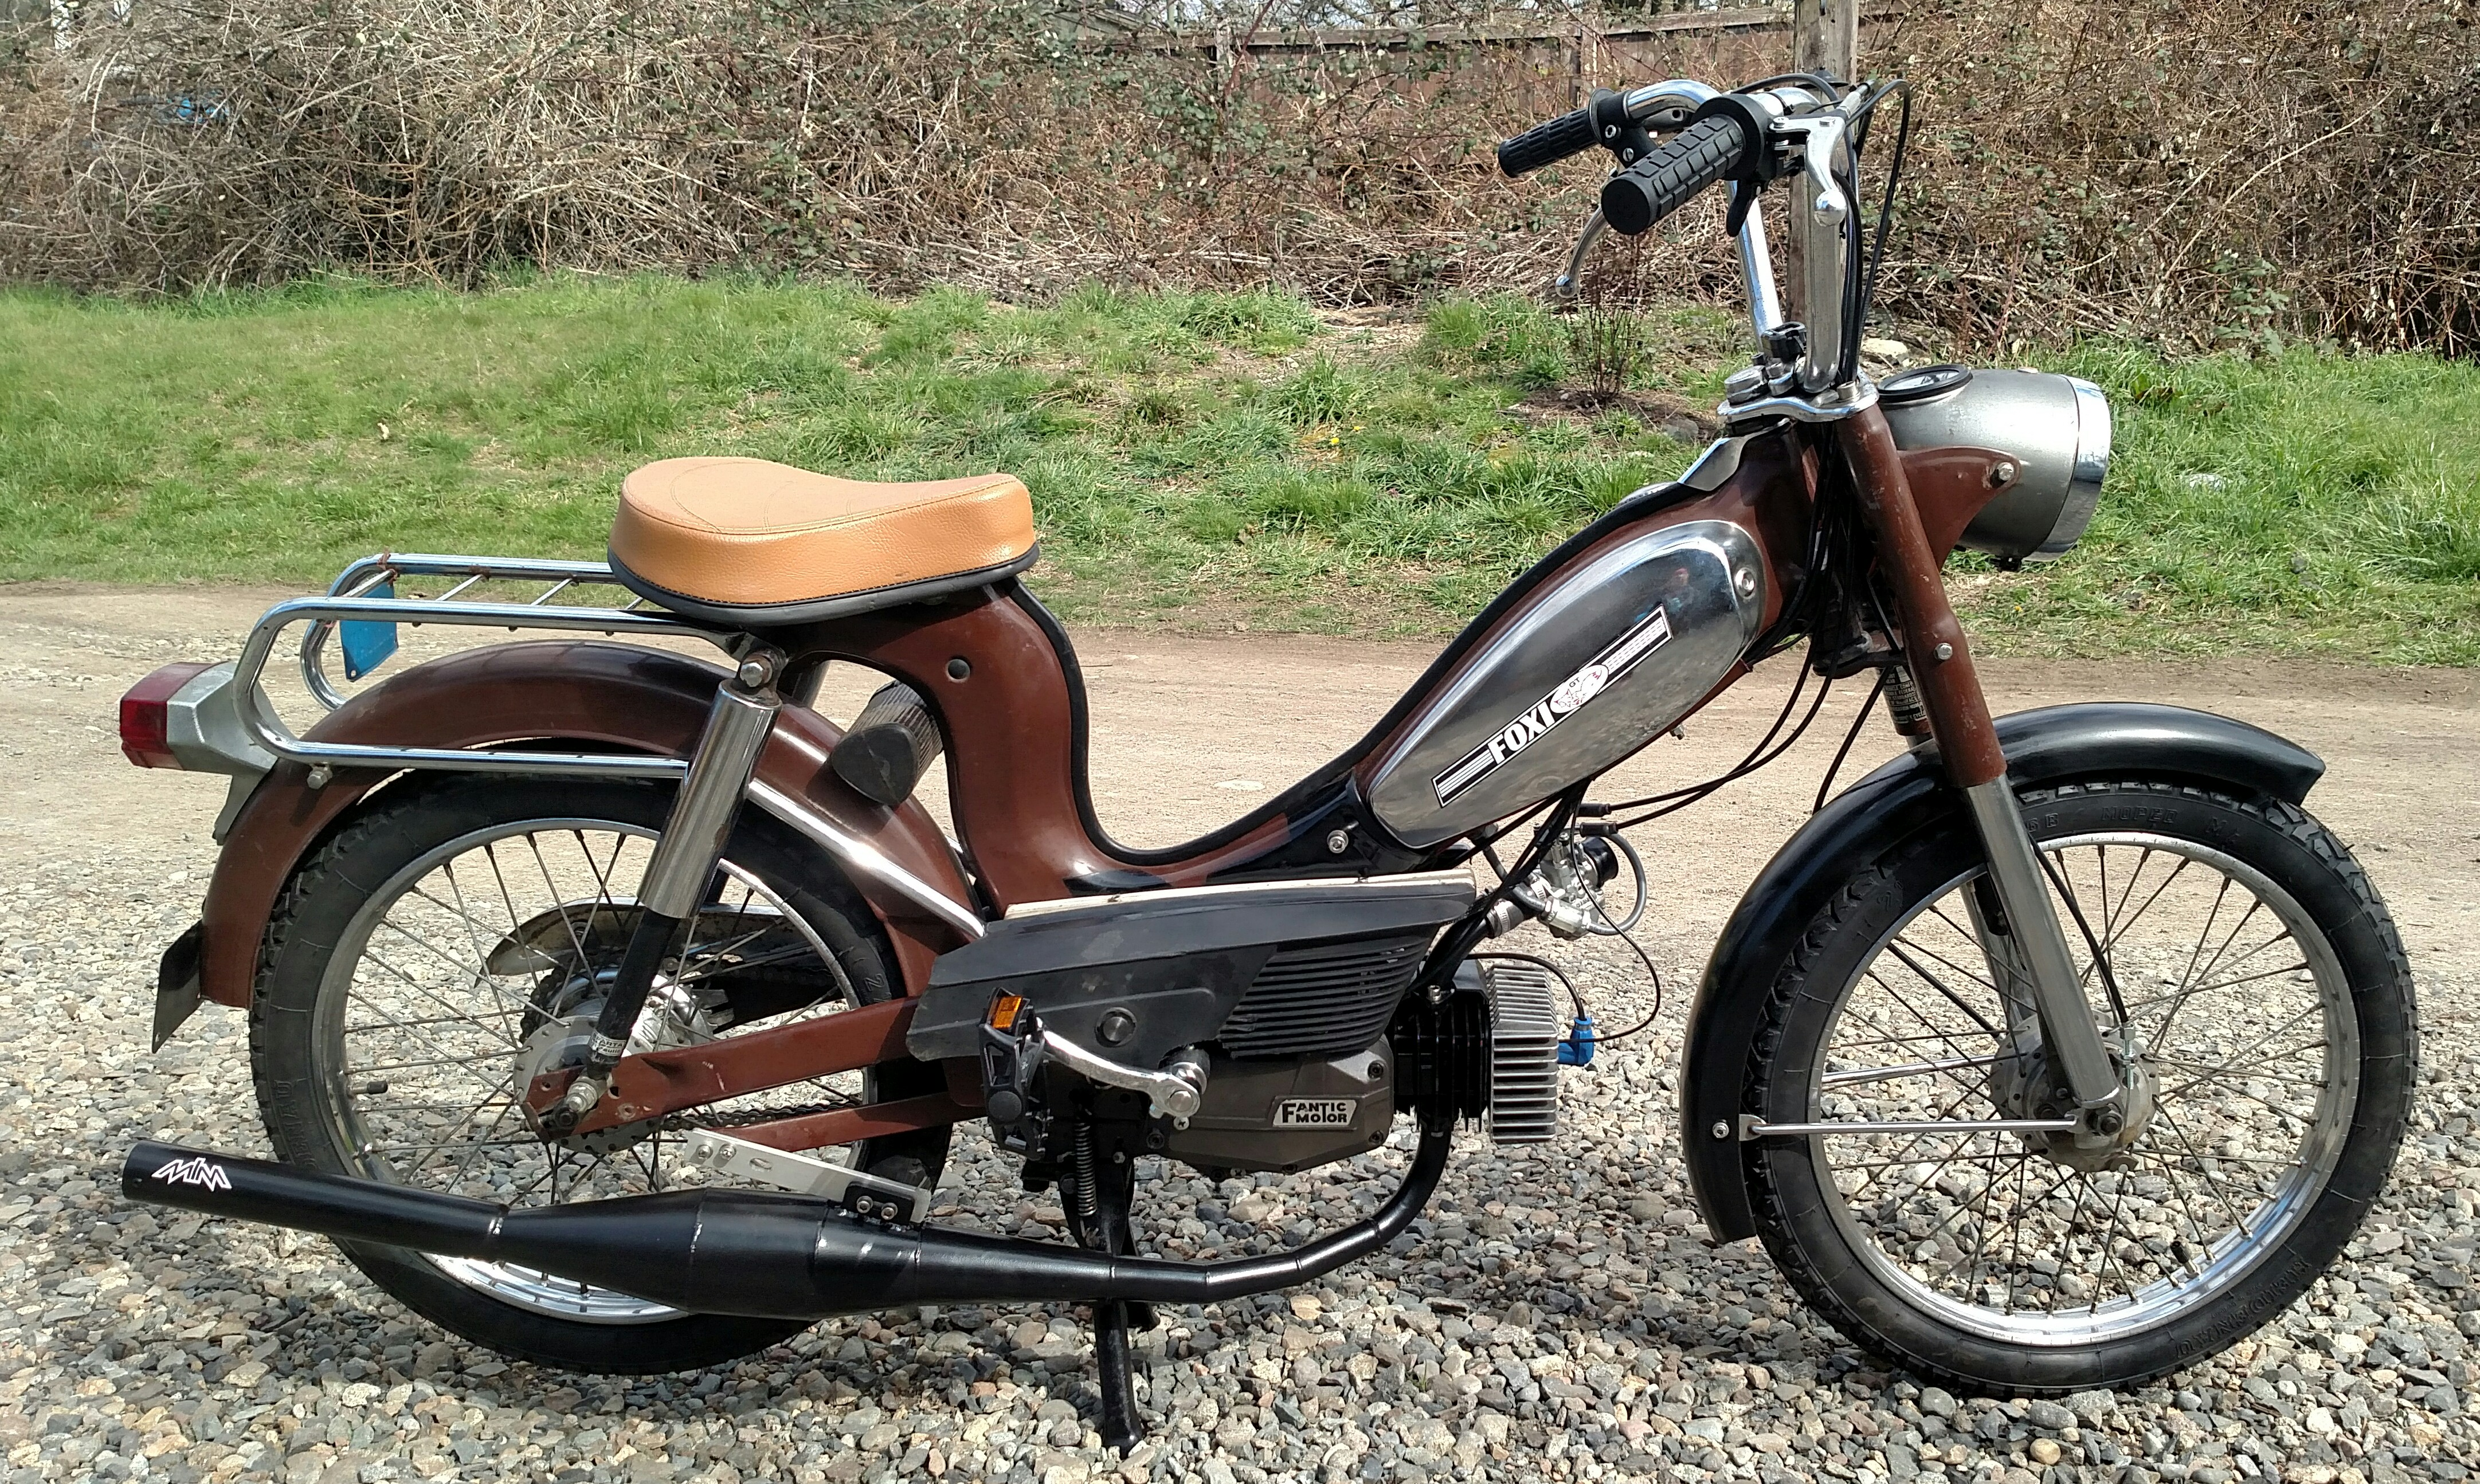 Foxi Fantic V1 Sport build — Moped Army